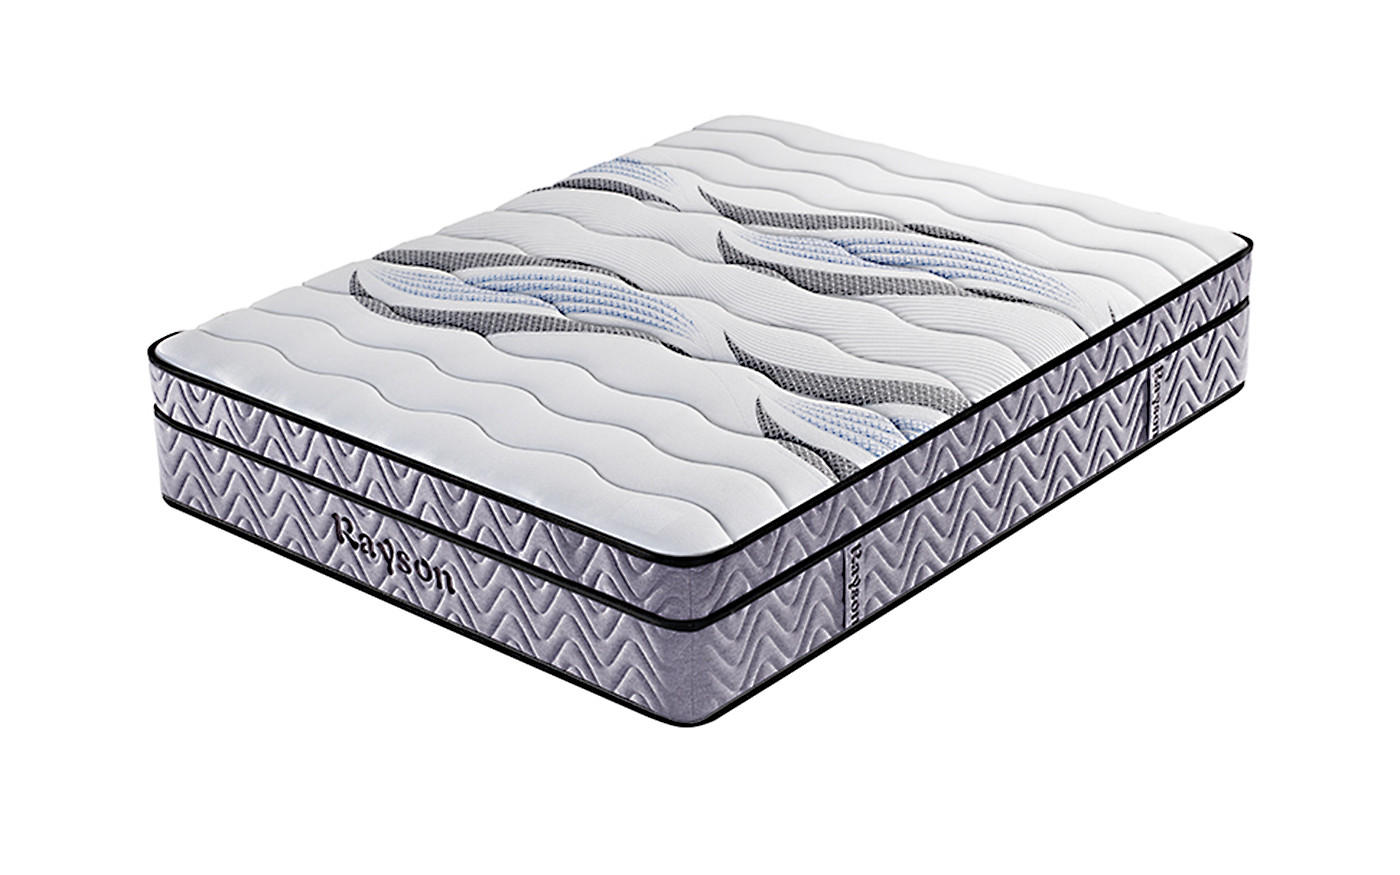 King 5 star hotel bonnell pocket spring euro top mattress wholesale-1